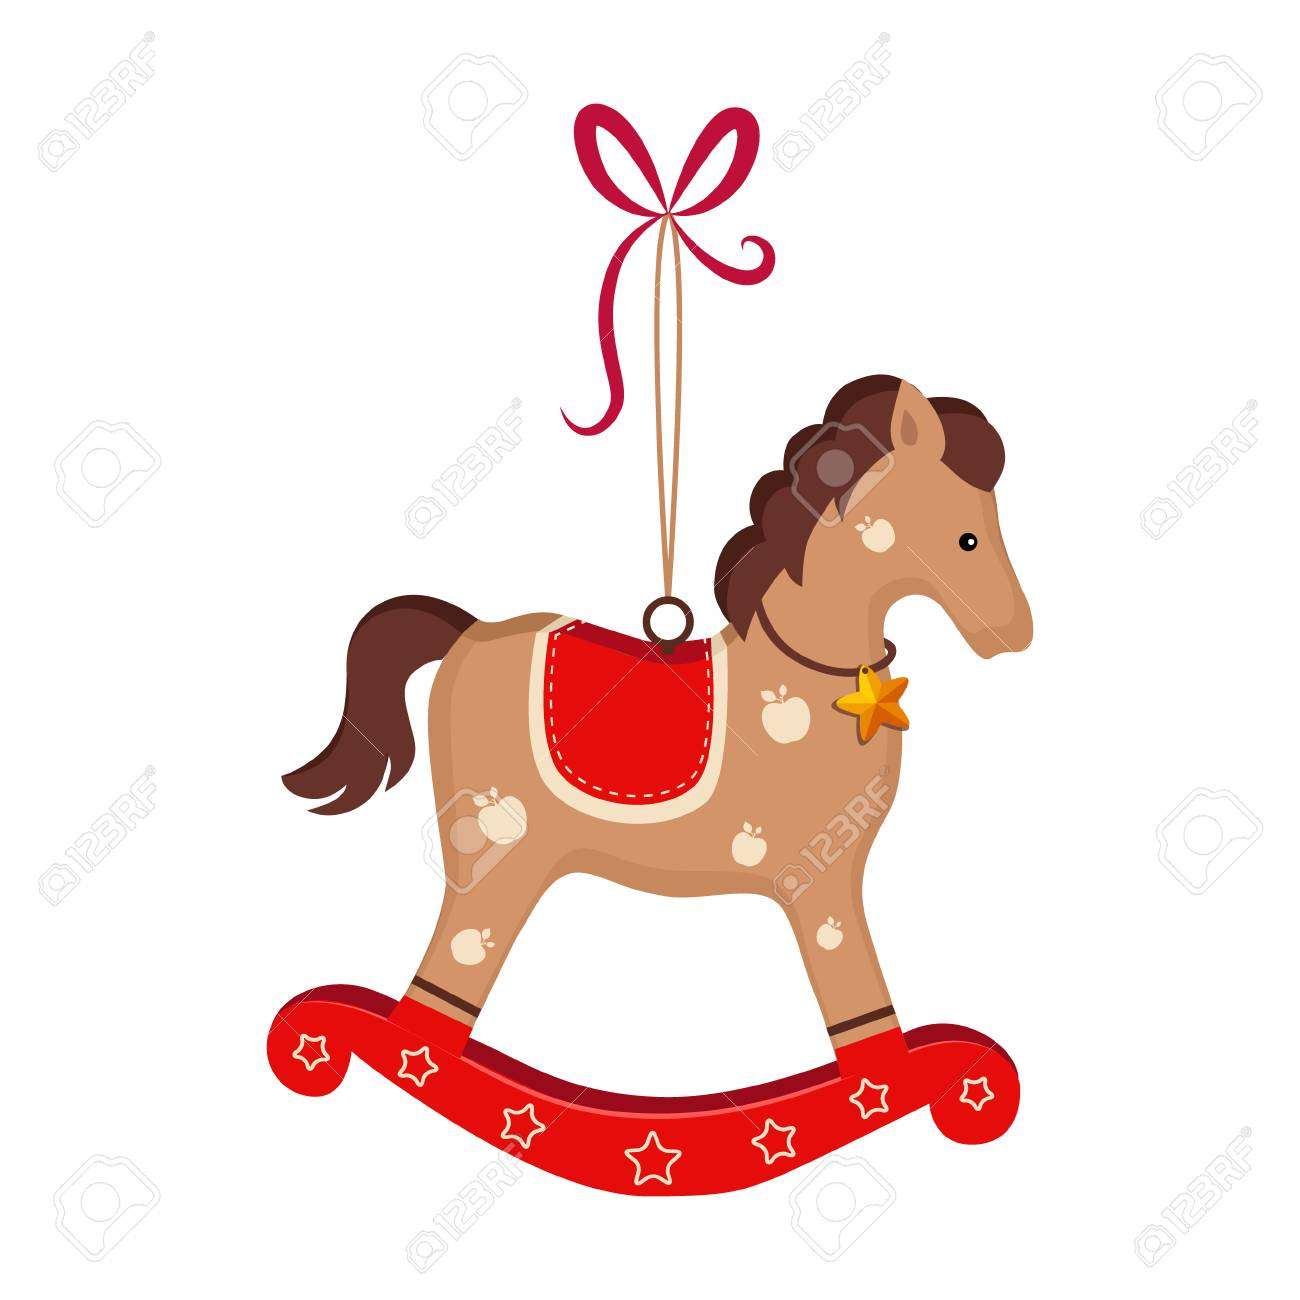 Christmas Toy Rocking Horse Greeting Card With Text Vector Royalty Free Cliparts Vectors And Stock Illustration Image 128162863